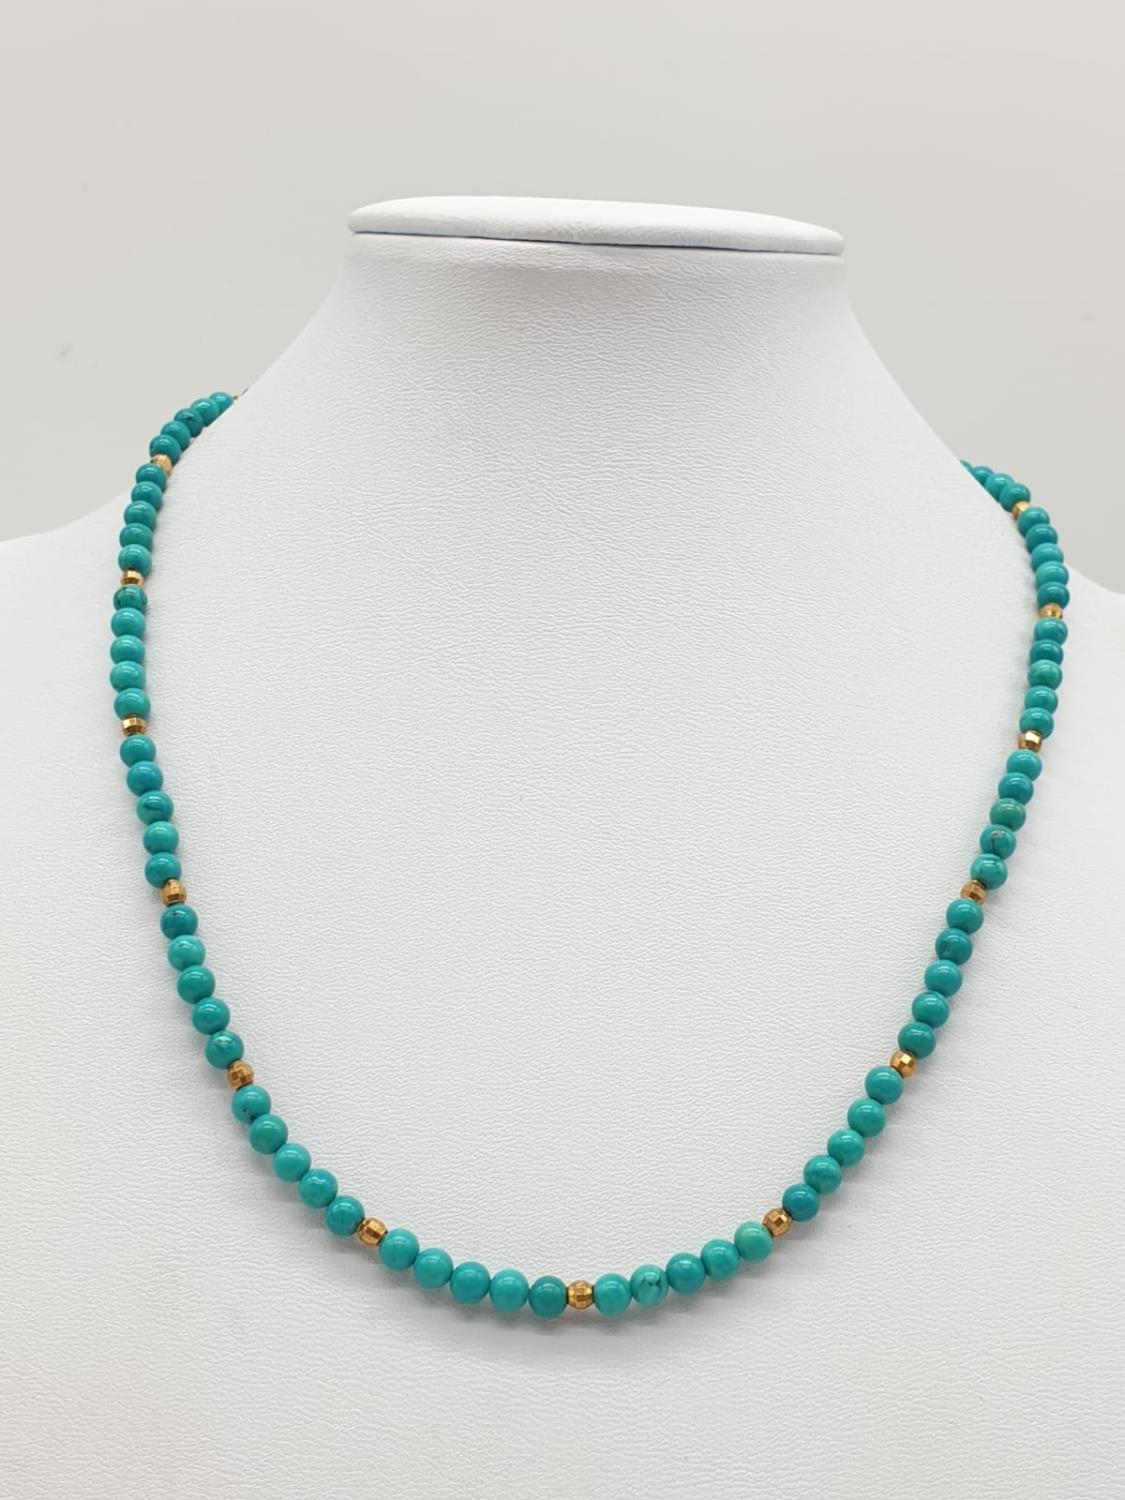 Turquoise and 9ct Gold NECKLACE. 10g 40cm